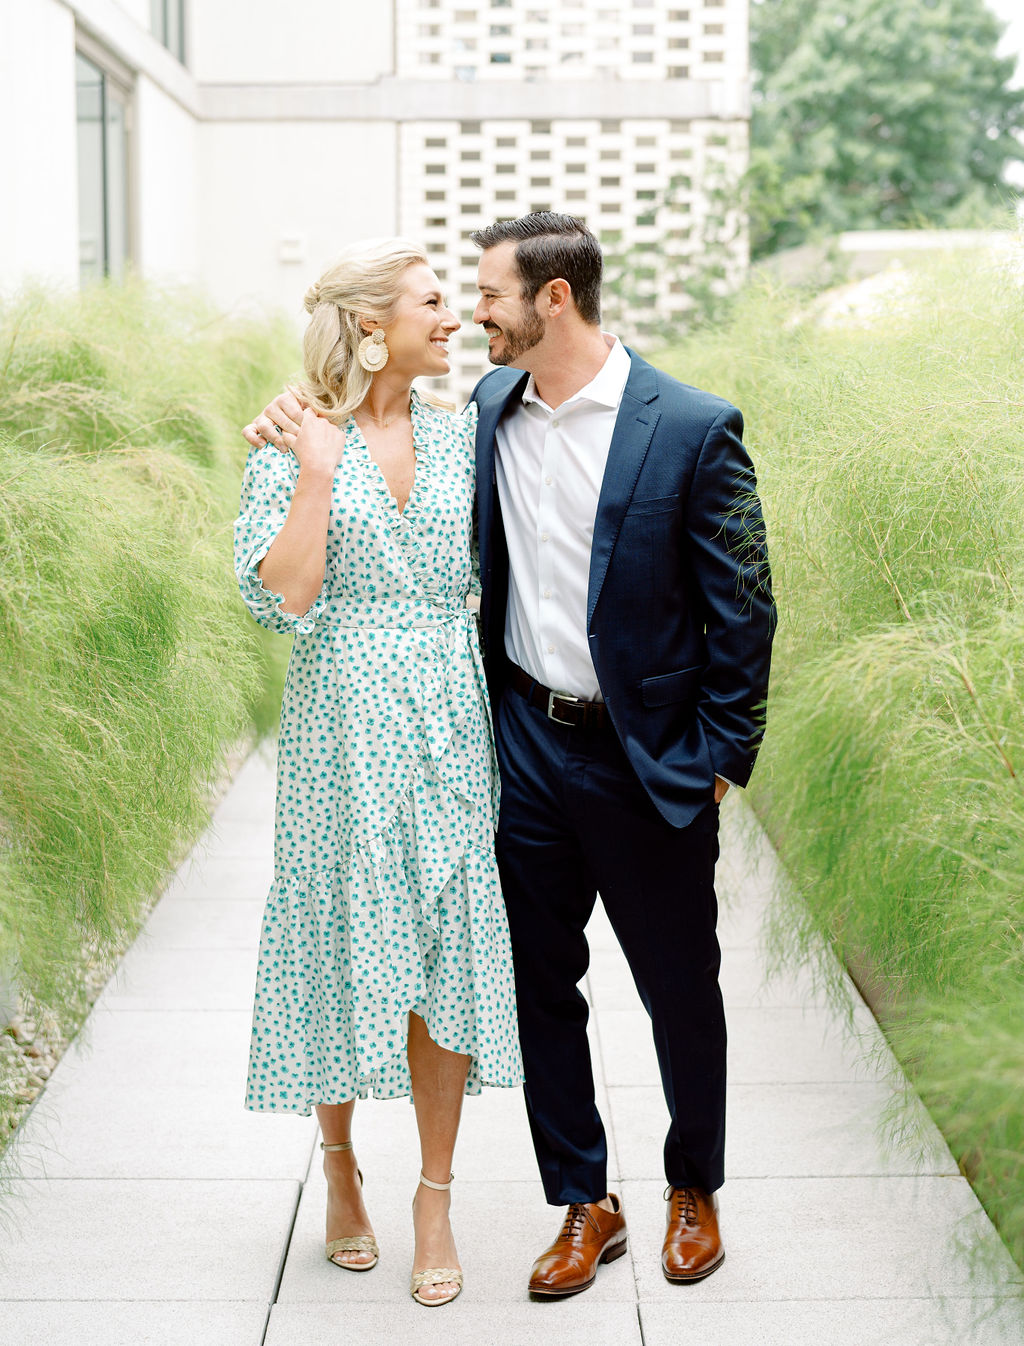 Austin-Elopement-Intimate-Wedding-Photographer-South-Congress-Hotel-Engagement-Session-5.jpg